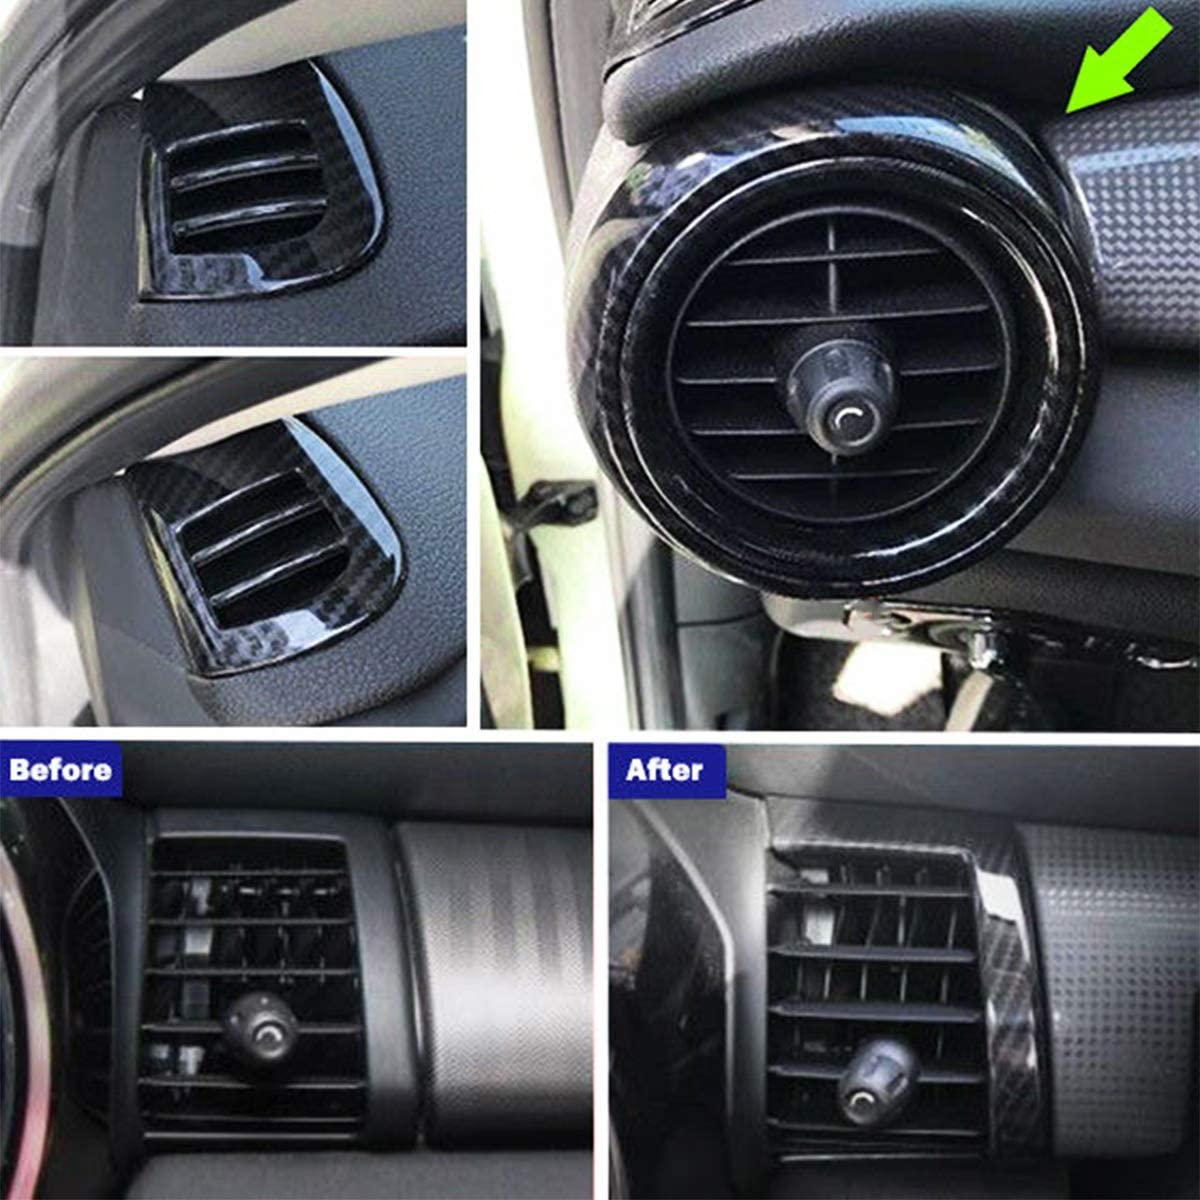 HCHD 8Pcs Dash Air Vent-Abdeckung for BMW Mini Cooper F55 F56 F57 Carbon-Faser-Innenleisten Auto Air Outlet Borte Aufkleber